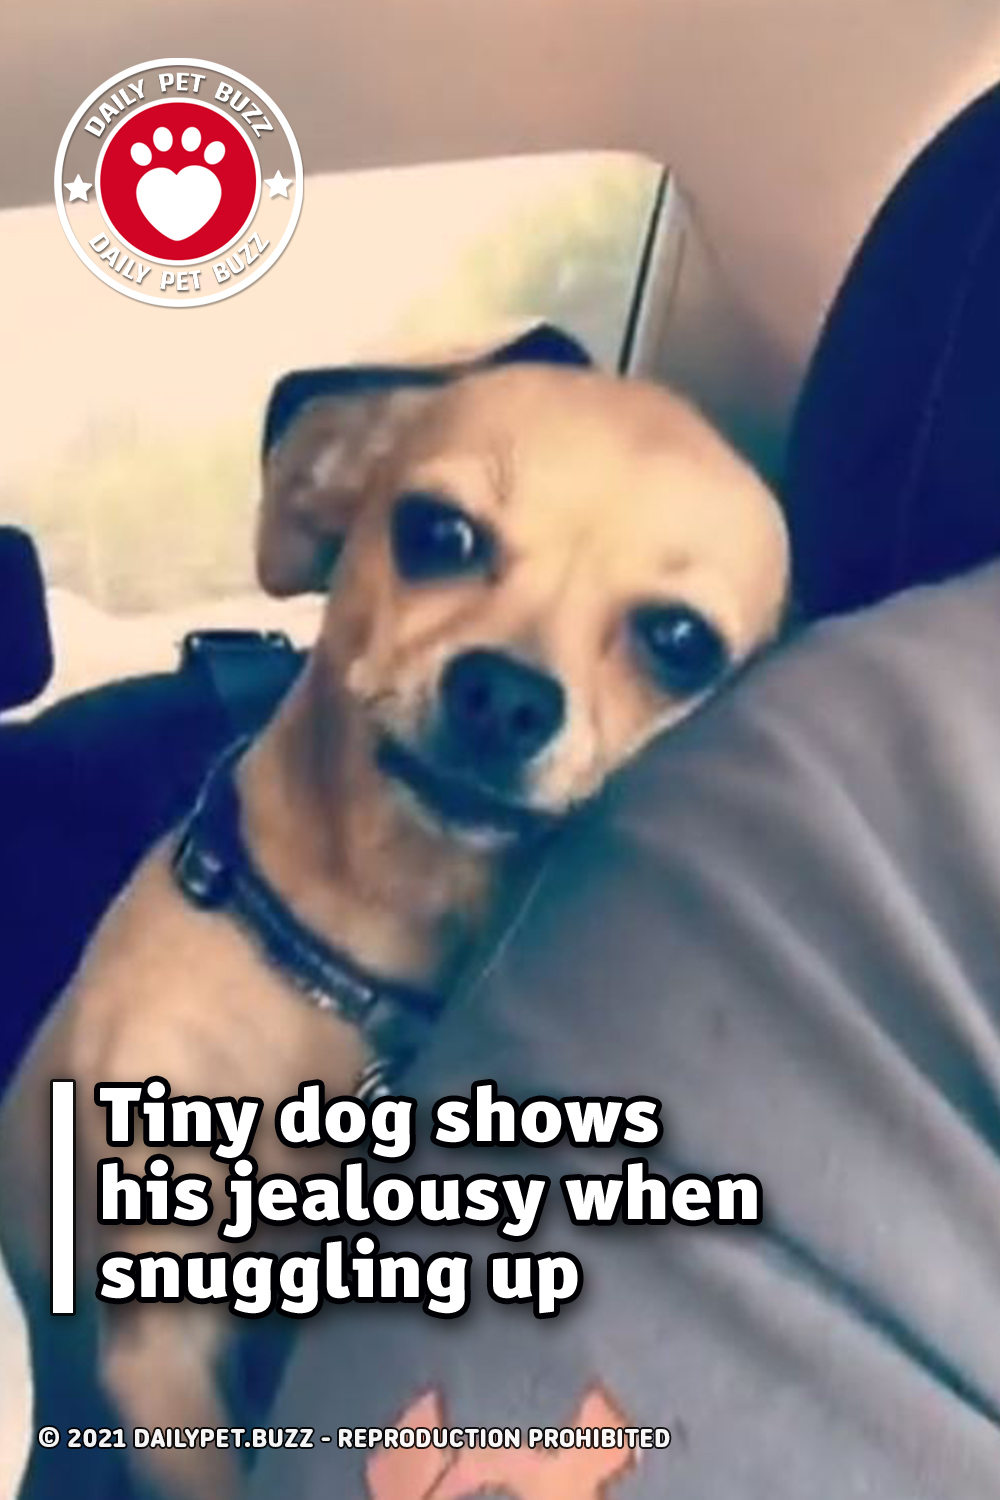 Tiny dog shows his jealousy when snuggling up